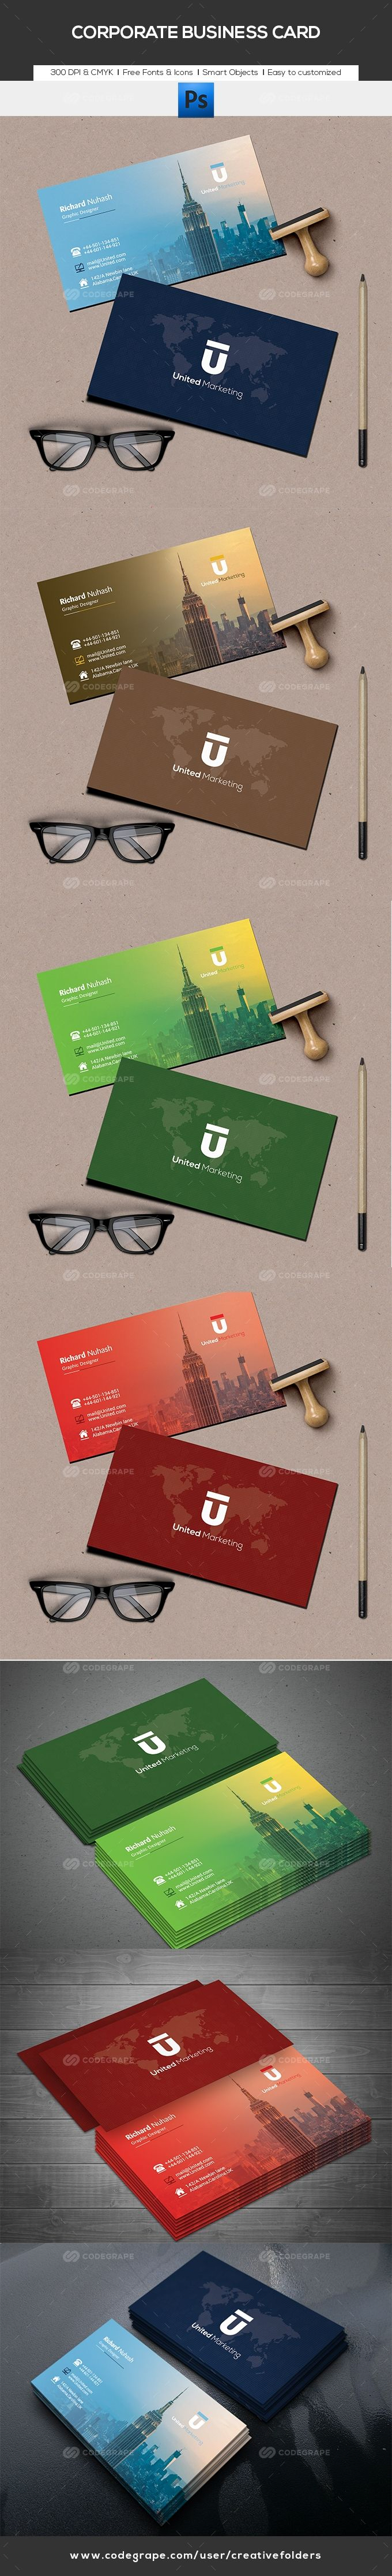 Corporate Business Card on @codegrape. More Info: https://www.codegrape.com/item/corporate-business-card/17767